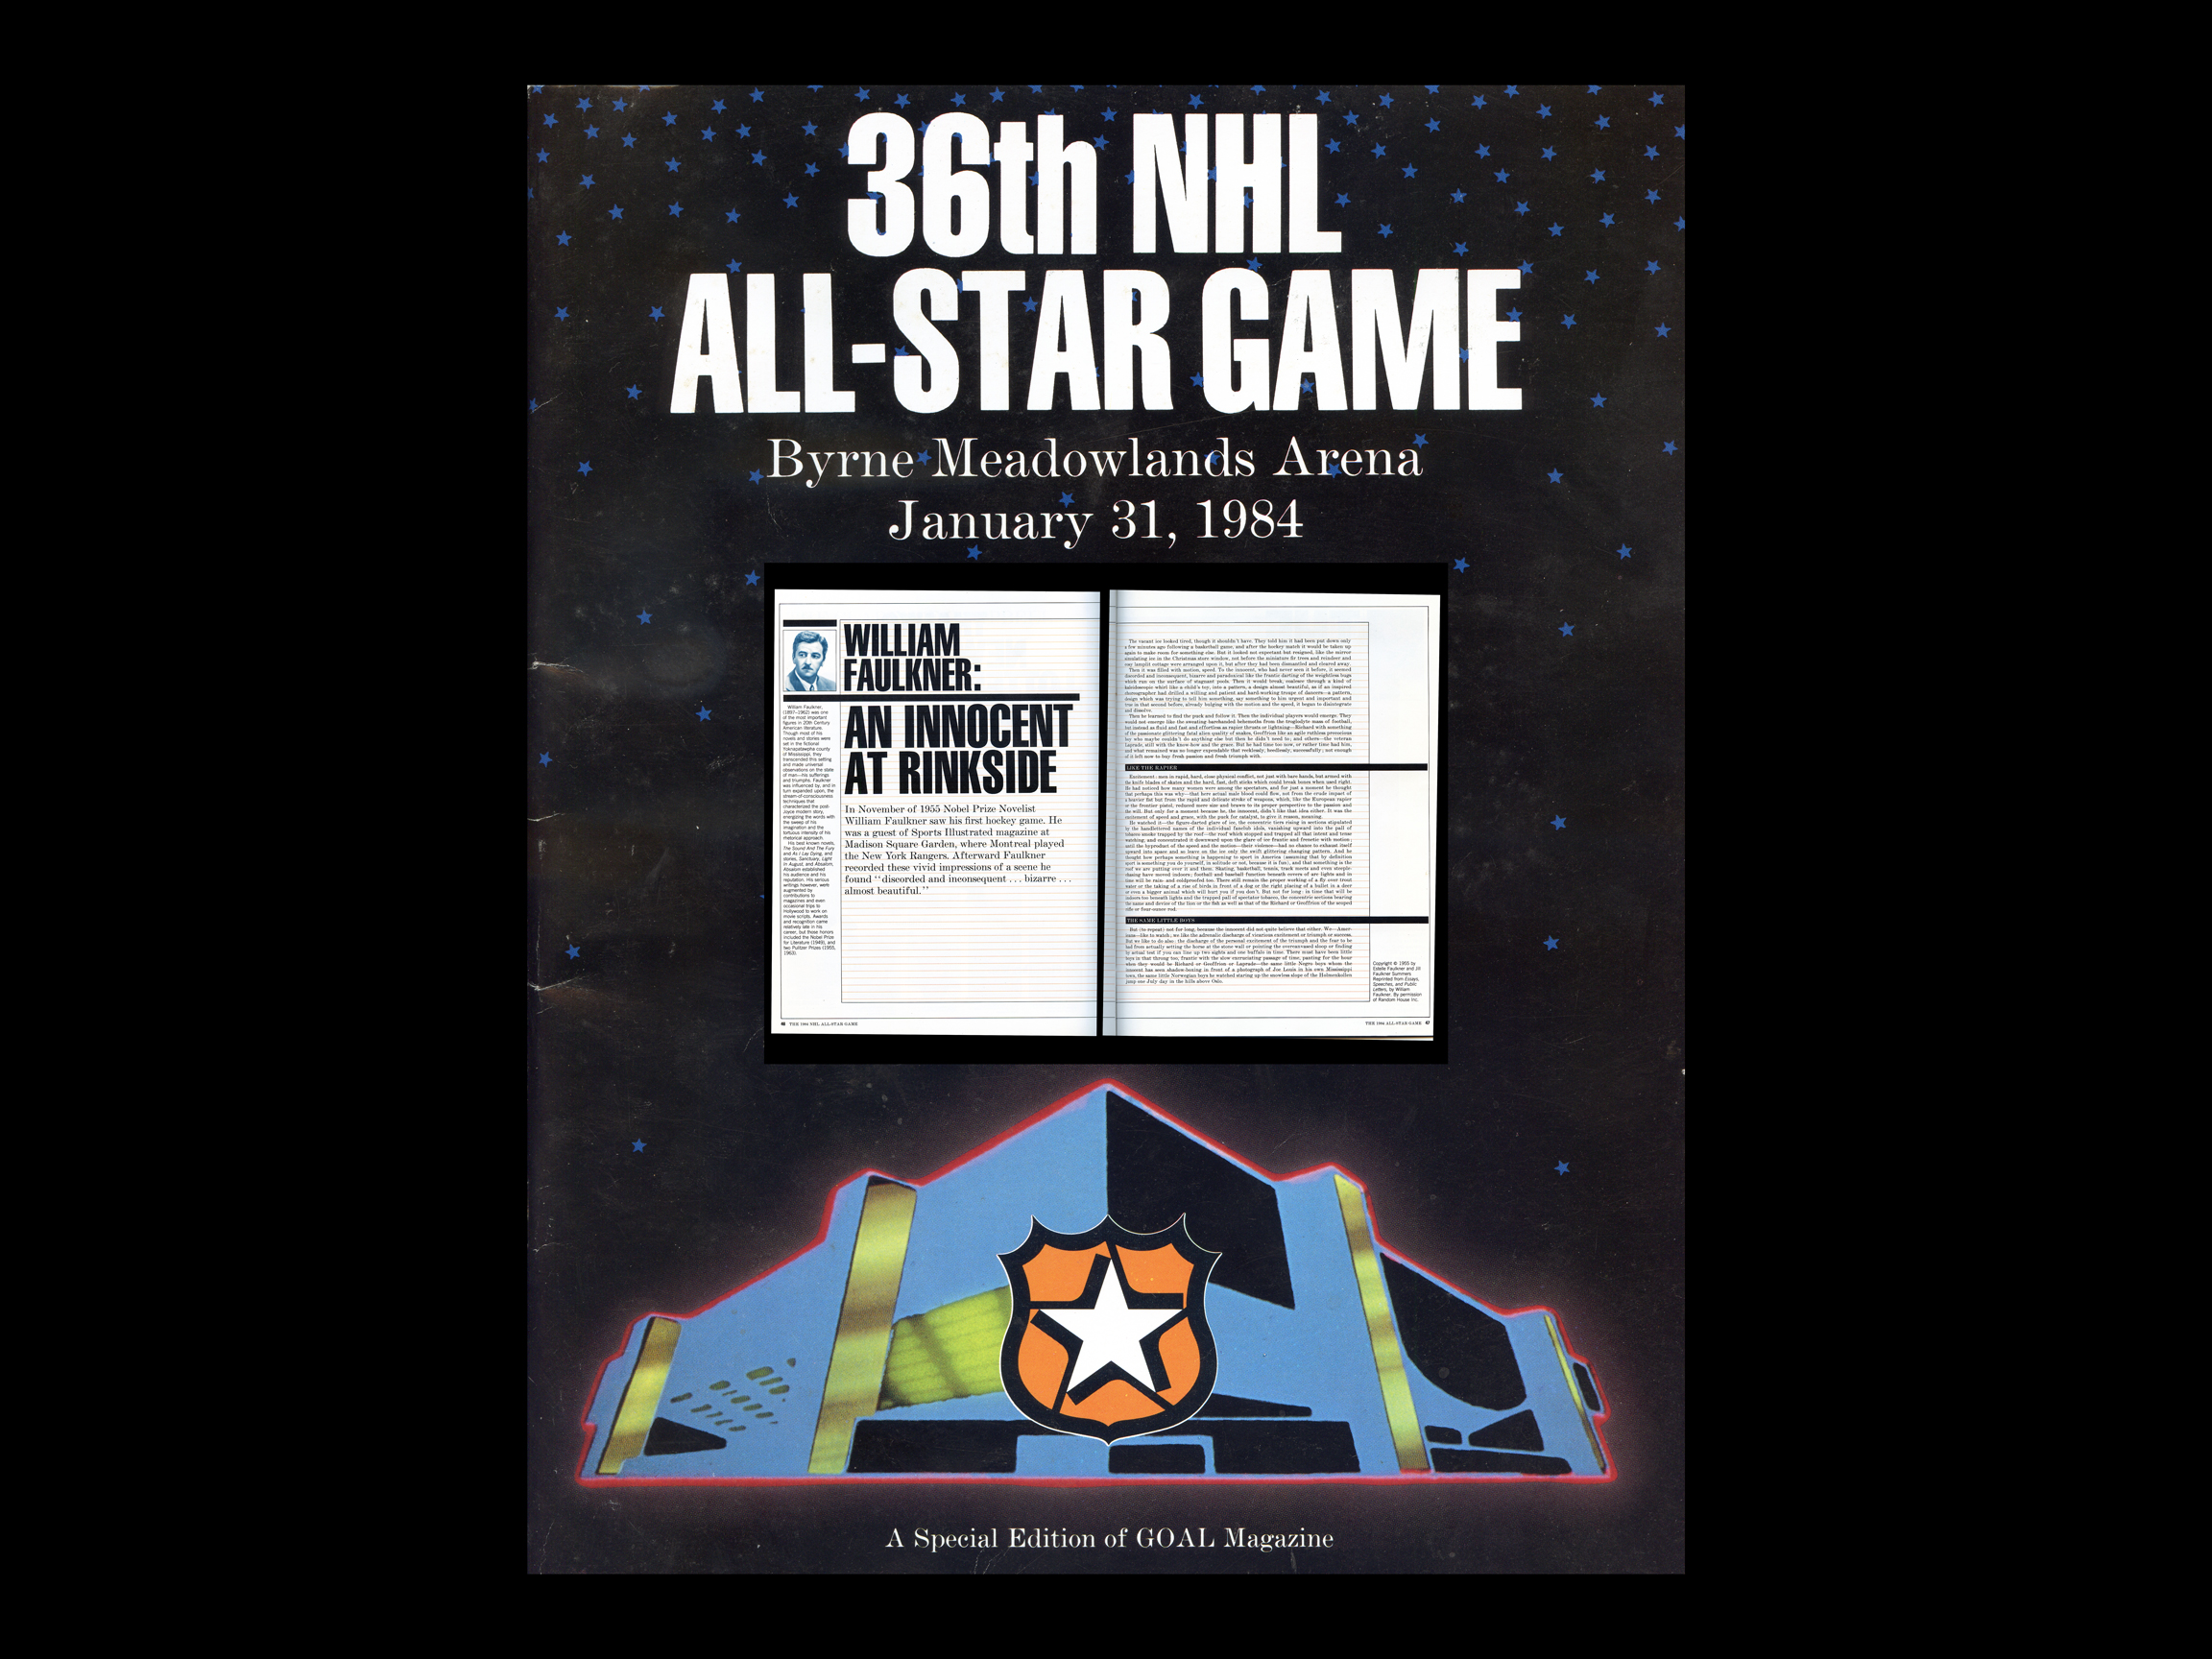 william faulkner essay on ice hockey blog the 36th nhl all star game magazine